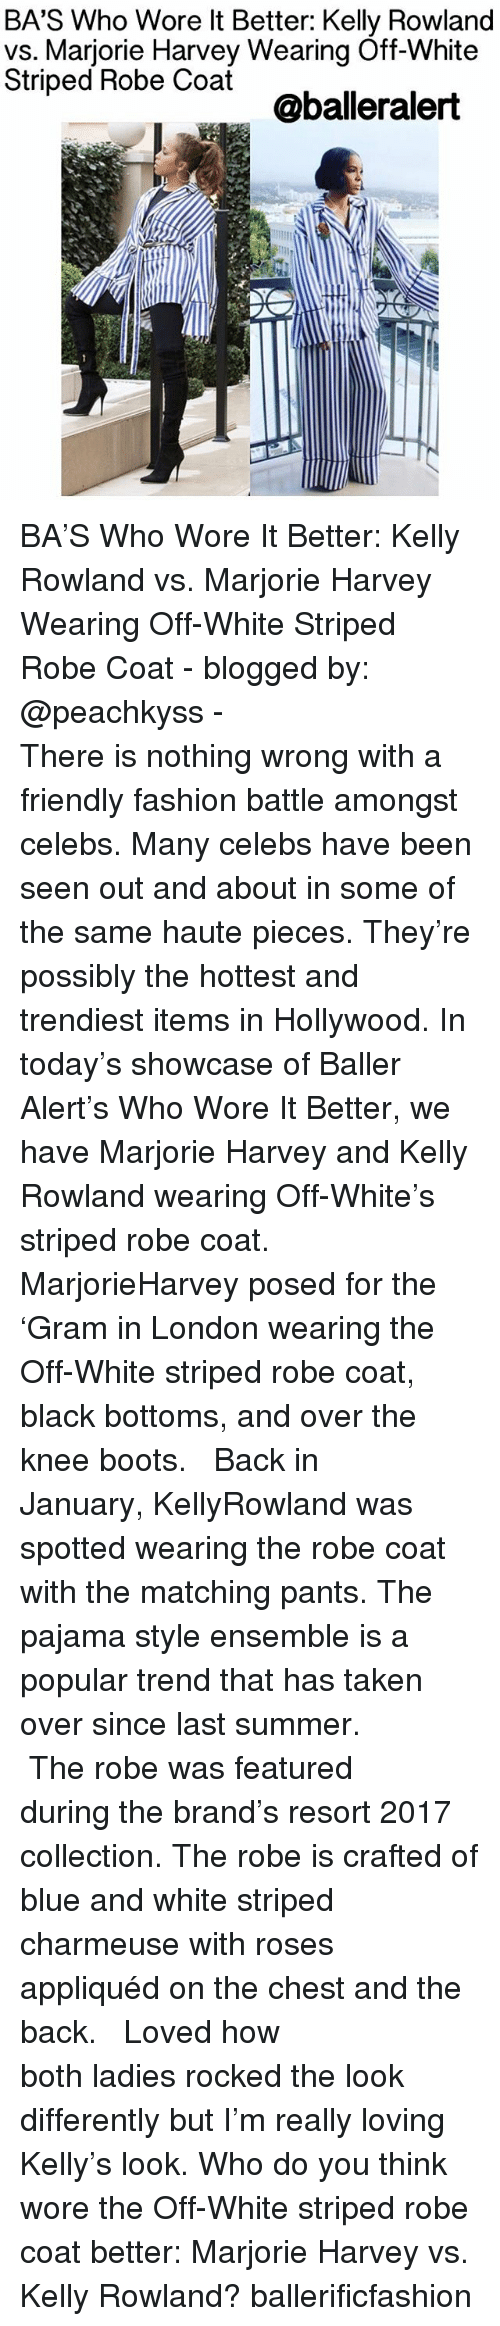 Memes, 🤖, and Brand: BA's Who Wore It Better: Kelly Rowland  Marjorie Harvey Wearing Off-White  Striped Robe Coat  @balleralert BA'S Who Wore It Better: Kelly Rowland vs. Marjorie Harvey Wearing Off-White Striped Robe Coat - blogged by: @peachkyss - ⠀⠀⠀⠀⠀⠀⠀⠀⠀ ⠀⠀⠀⠀⠀⠀⠀⠀ There is nothing wrong with a friendly fashion battle amongst celebs. Many celebs have been seen out and about in some of the same haute pieces. They're possibly the hottest and trendiest items in Hollywood. In today's showcase of Baller Alert's Who Wore It Better, we have Marjorie Harvey and Kelly Rowland wearing Off-White's striped robe coat. ⠀⠀⠀⠀⠀⠀⠀⠀⠀ ⠀⠀⠀⠀⠀⠀⠀⠀ MarjorieHarvey posed for the 'Gram in London wearing the Off-White striped robe coat, black bottoms, and over the knee boots. ⠀⠀⠀⠀⠀⠀⠀⠀⠀ ⠀⠀⠀⠀⠀⠀⠀⠀ Back in January, KellyRowland was spotted wearing the robe coat with the matching pants. The pajama style ensemble is a popular trend that has taken over since last summer. ⠀⠀⠀⠀⠀⠀⠀⠀⠀ ⠀⠀⠀⠀⠀⠀⠀⠀ The robe was featured during the brand's resort 2017 collection. The robe is crafted of blue and white striped charmeuse with roses appliquéd on the chest and the back. ⠀⠀⠀⠀⠀⠀⠀⠀⠀ ⠀⠀⠀⠀⠀⠀⠀⠀ Loved how both ladies rocked the look differently but I'm really loving Kelly's look. Who do you think wore the Off-White striped robe coat better: Marjorie Harvey vs. Kelly Rowland? ballerificfashion